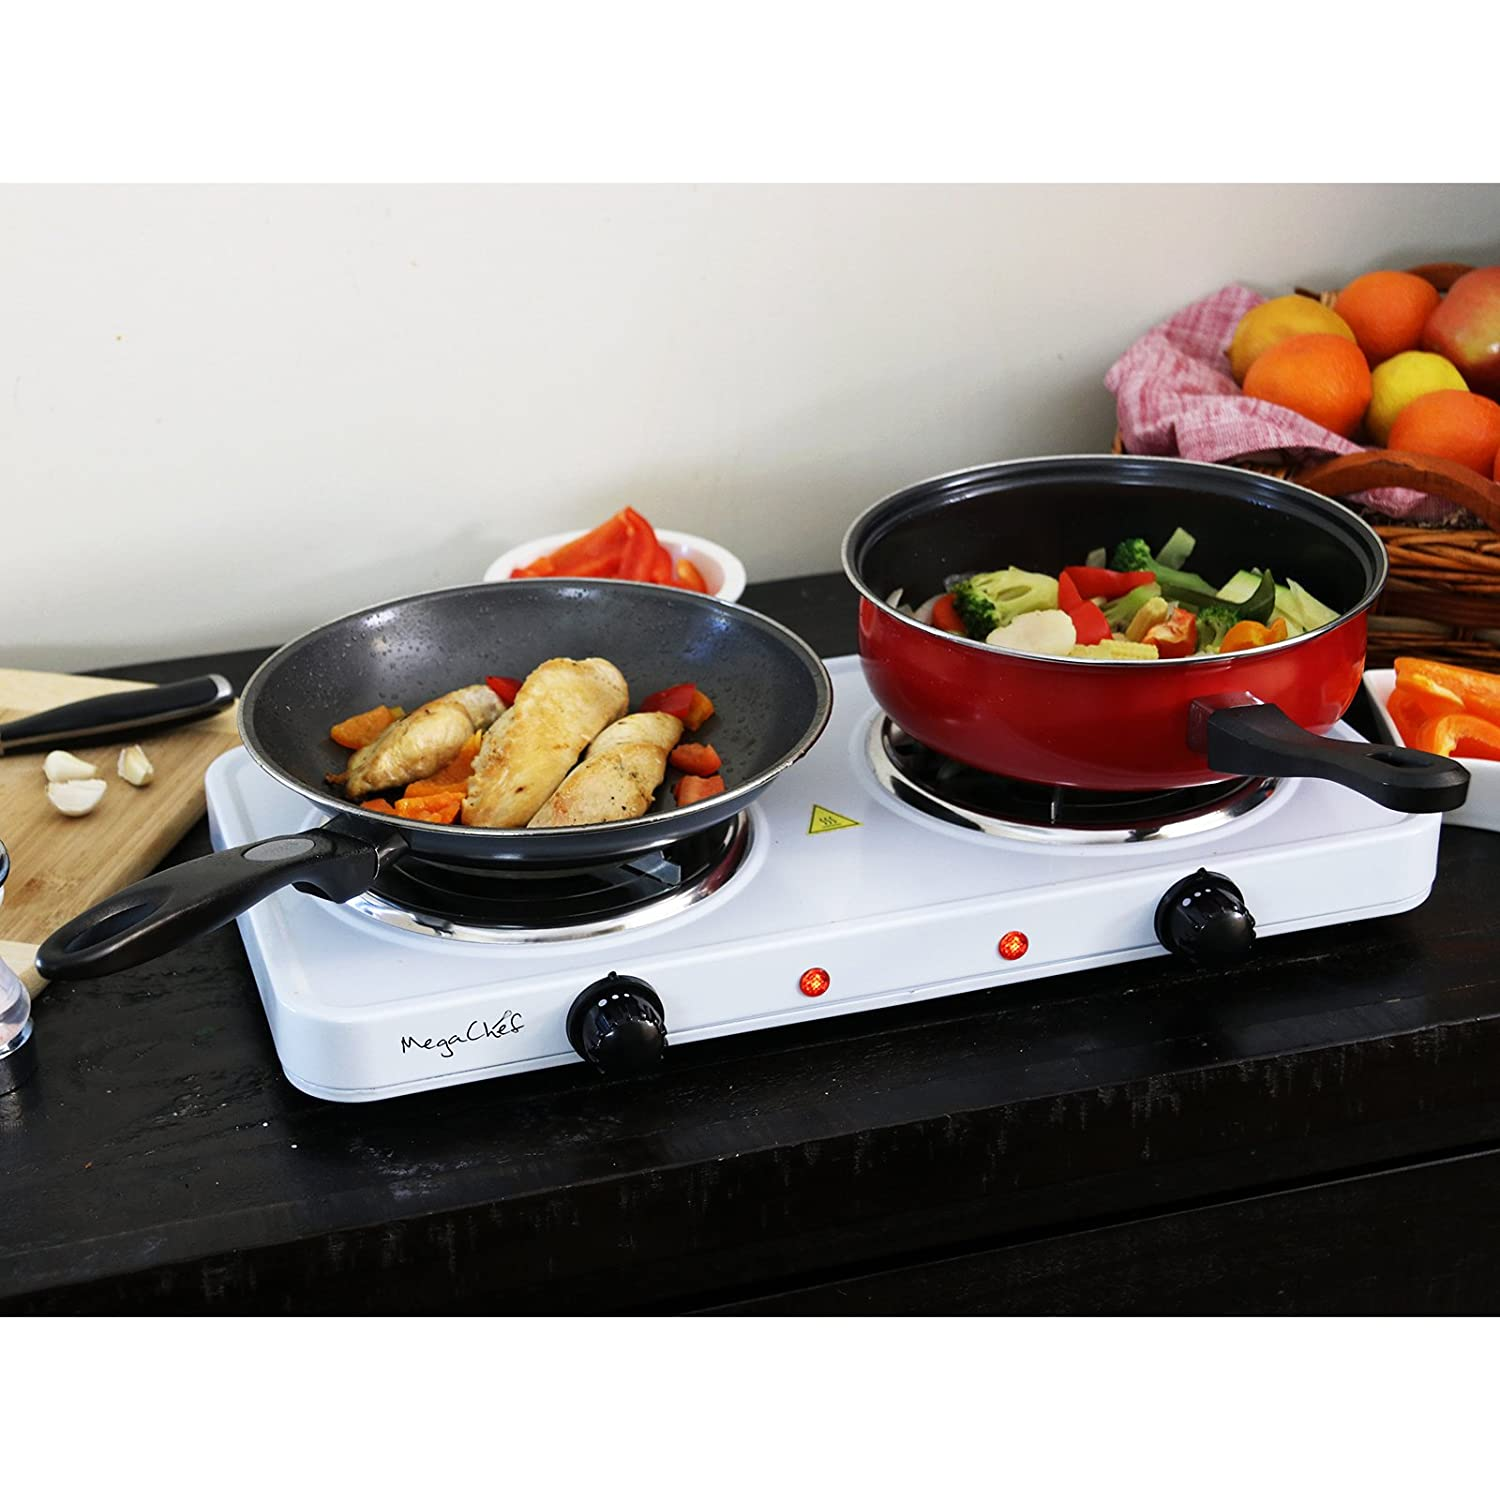 Amazon.com: MegaChef Electric Easily Portable Ultra Lightweight Dual Coil Burner Cooktop Buffet Range in White: Kitchen & Dining